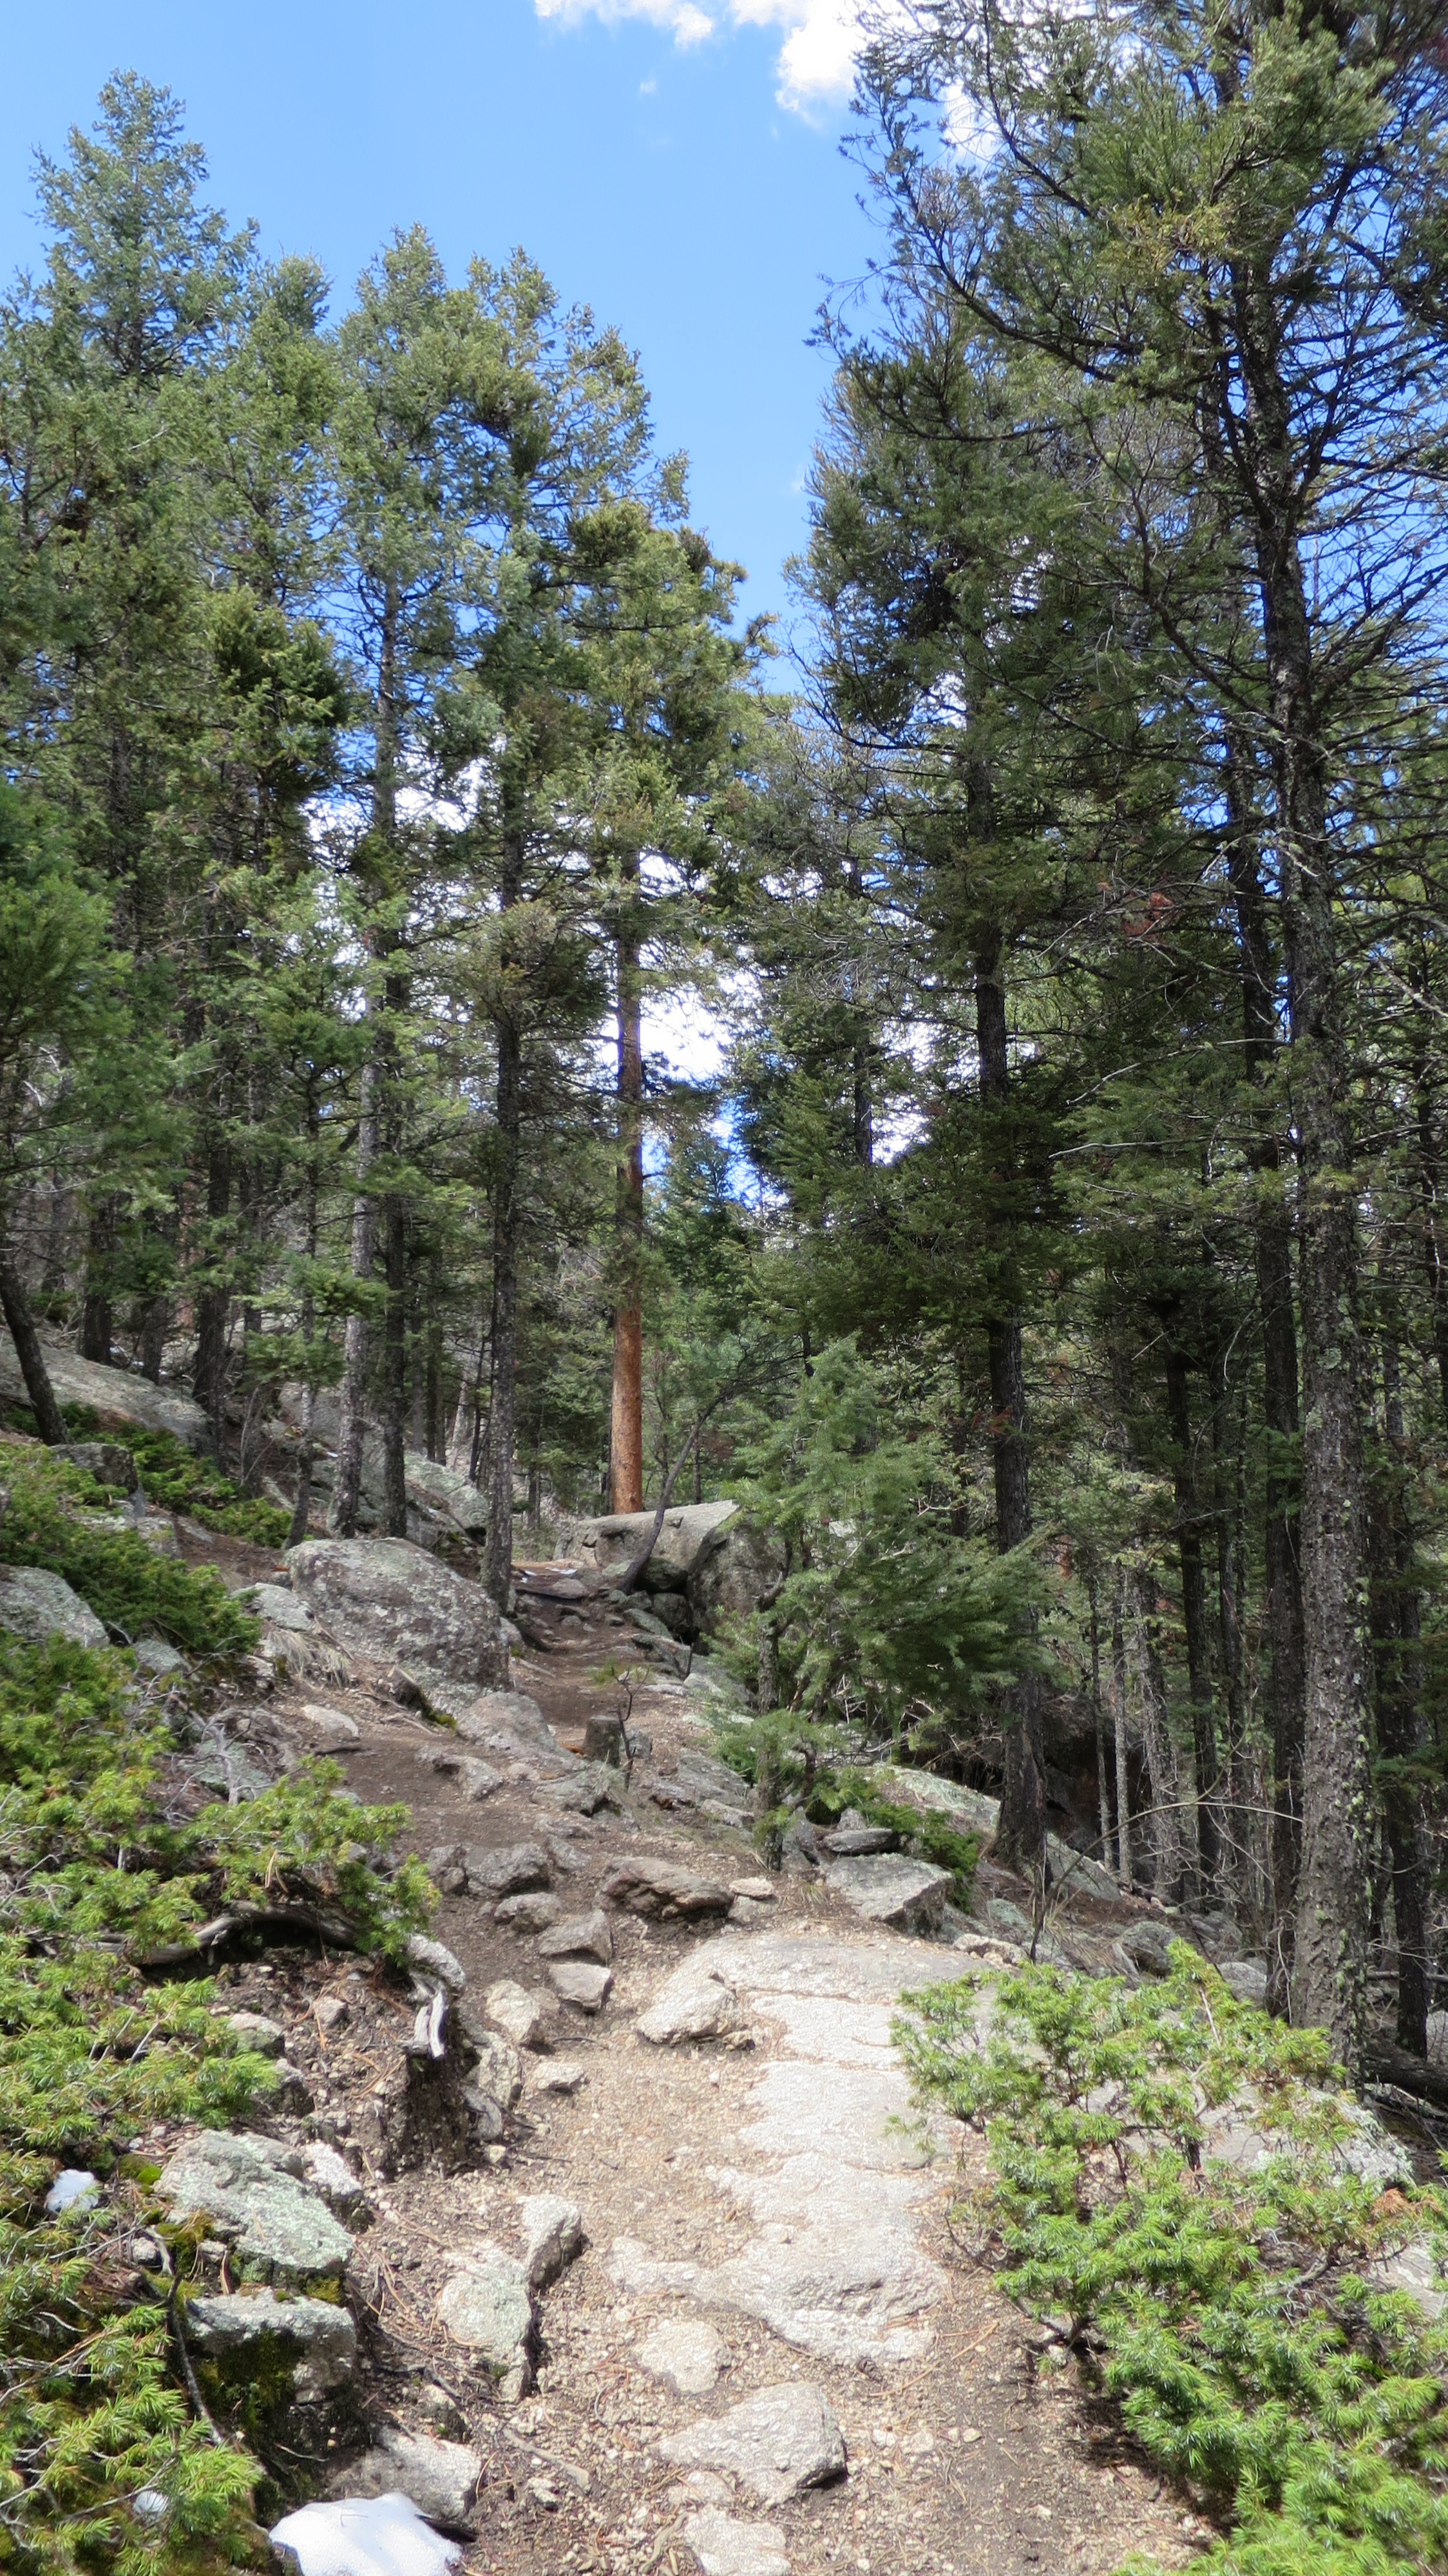 green mountain falls For sale: green mountain falls, co 80819 ∙ $75,000 ∙ mls# 6048728 ∙ easy access to hiking trails, creek and waterfall own your piece of paradise.